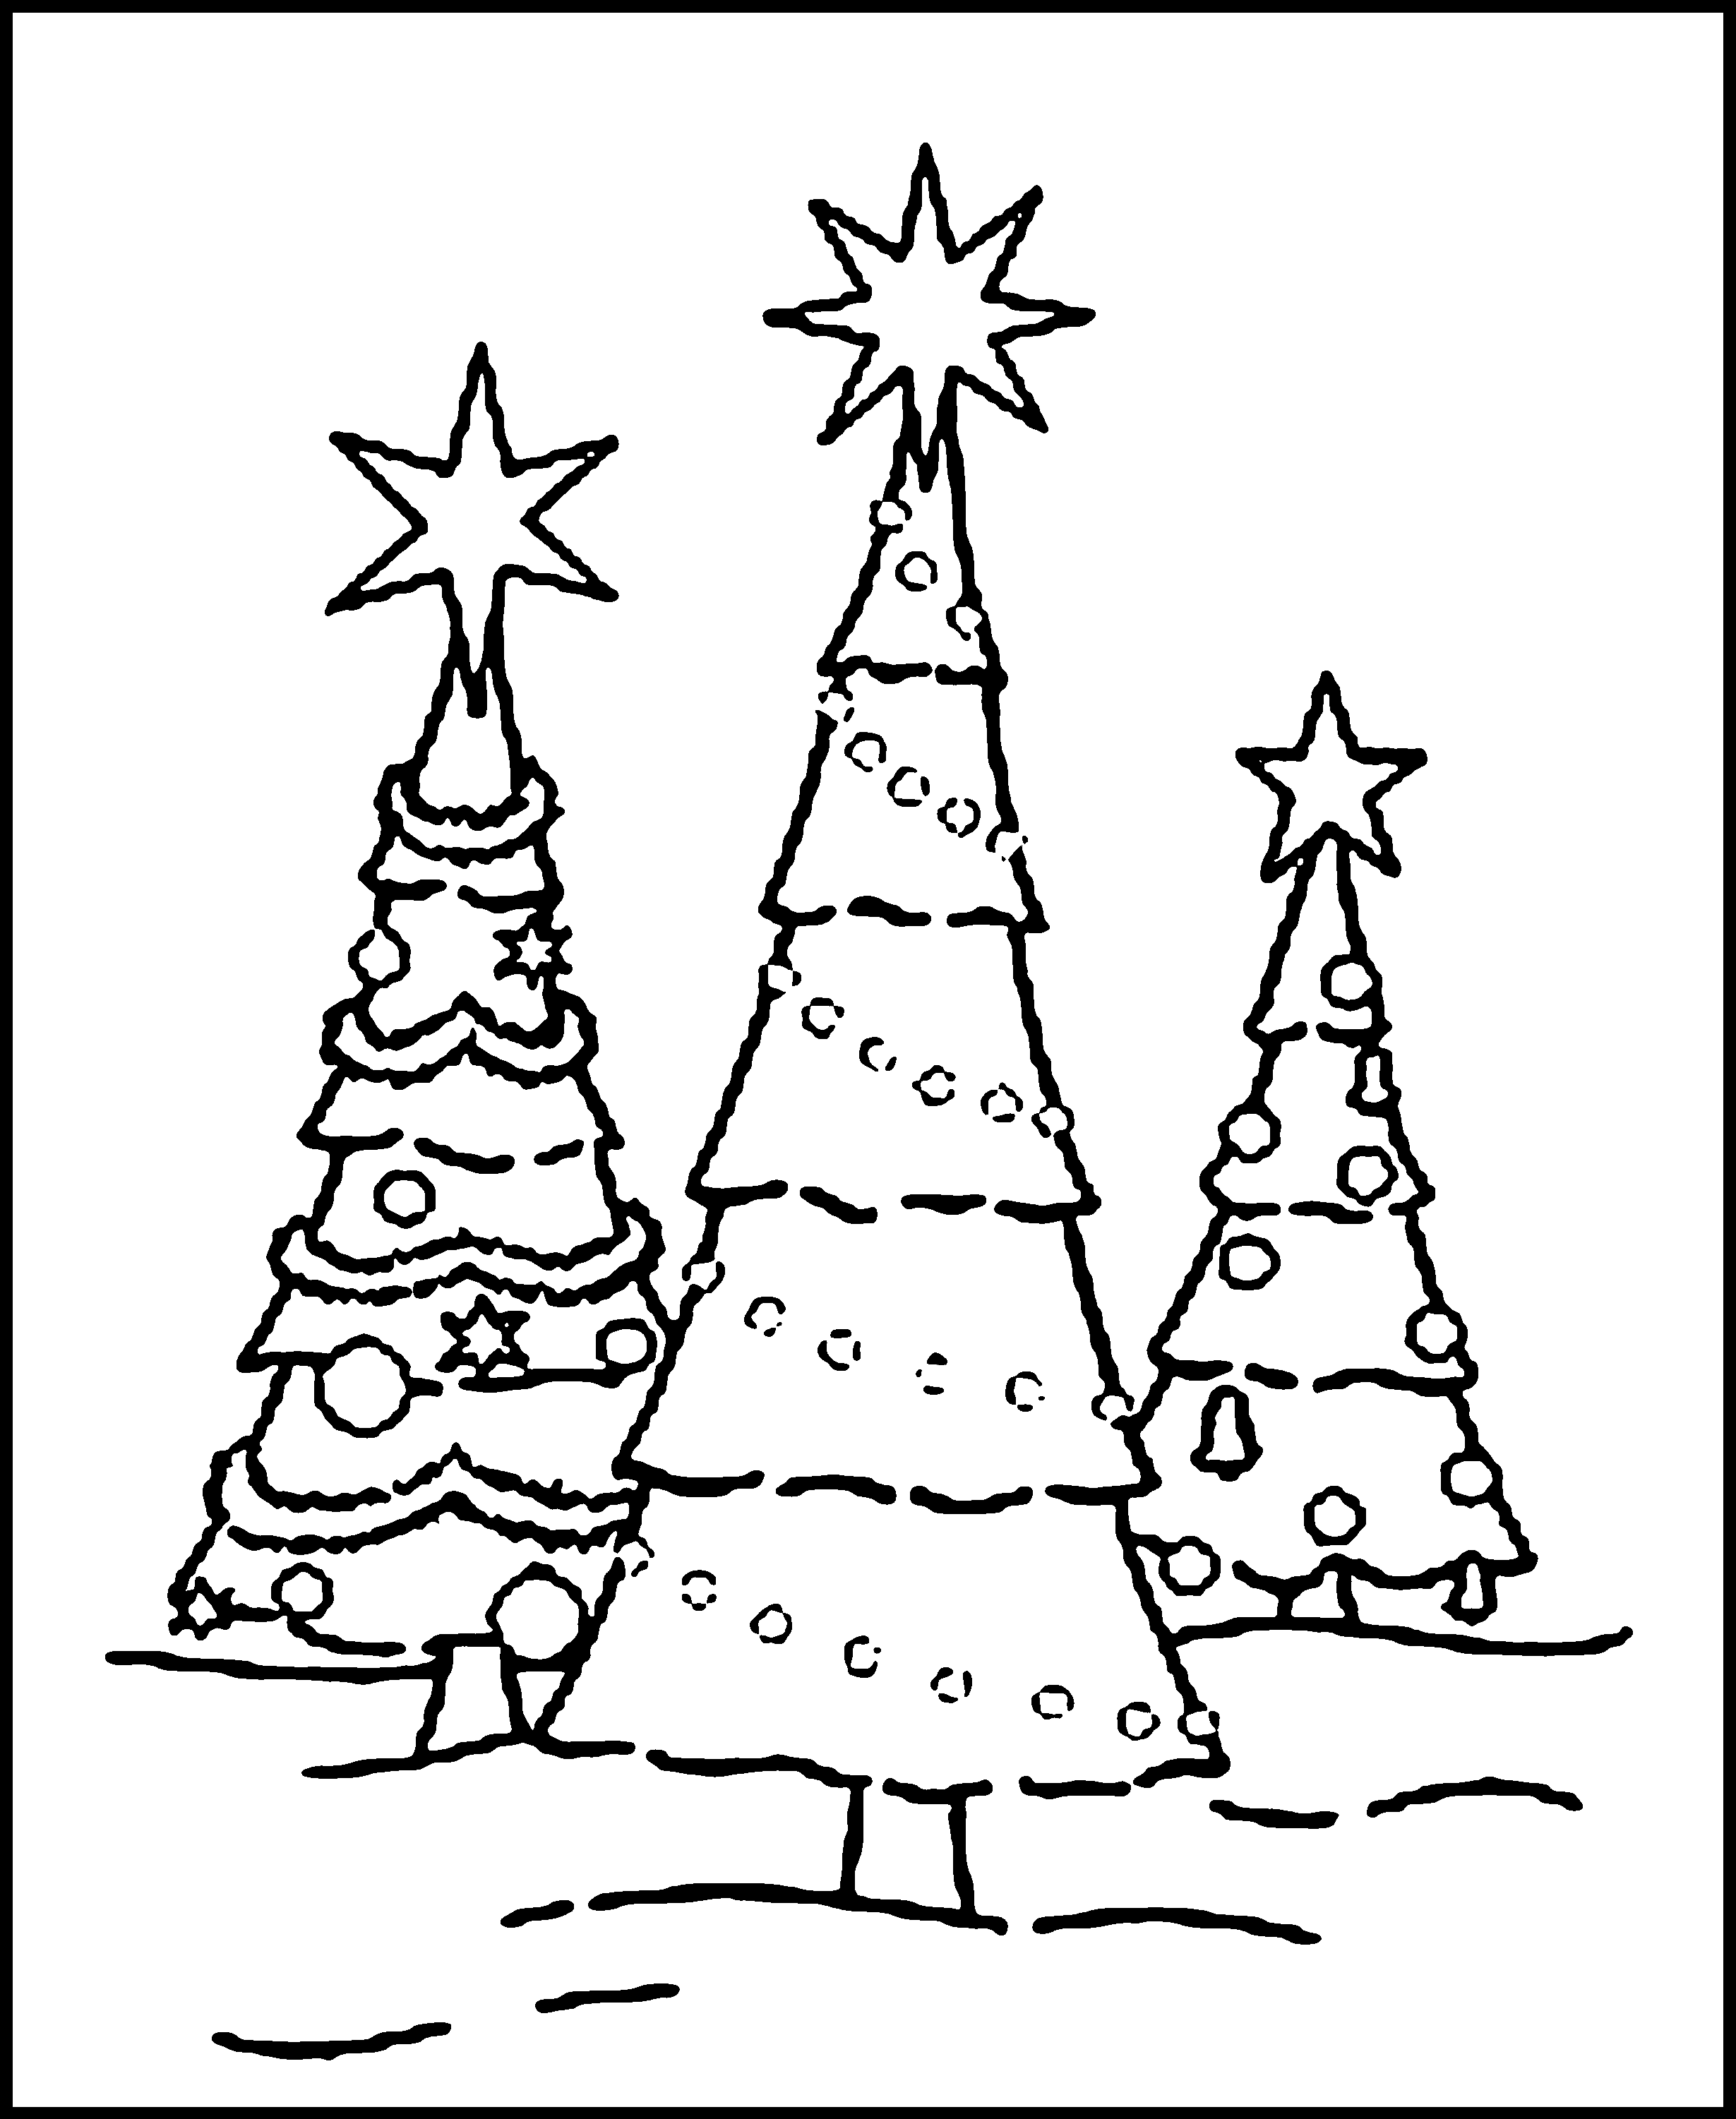 Colouring in xmas tree - Christmas Tree Color Pages